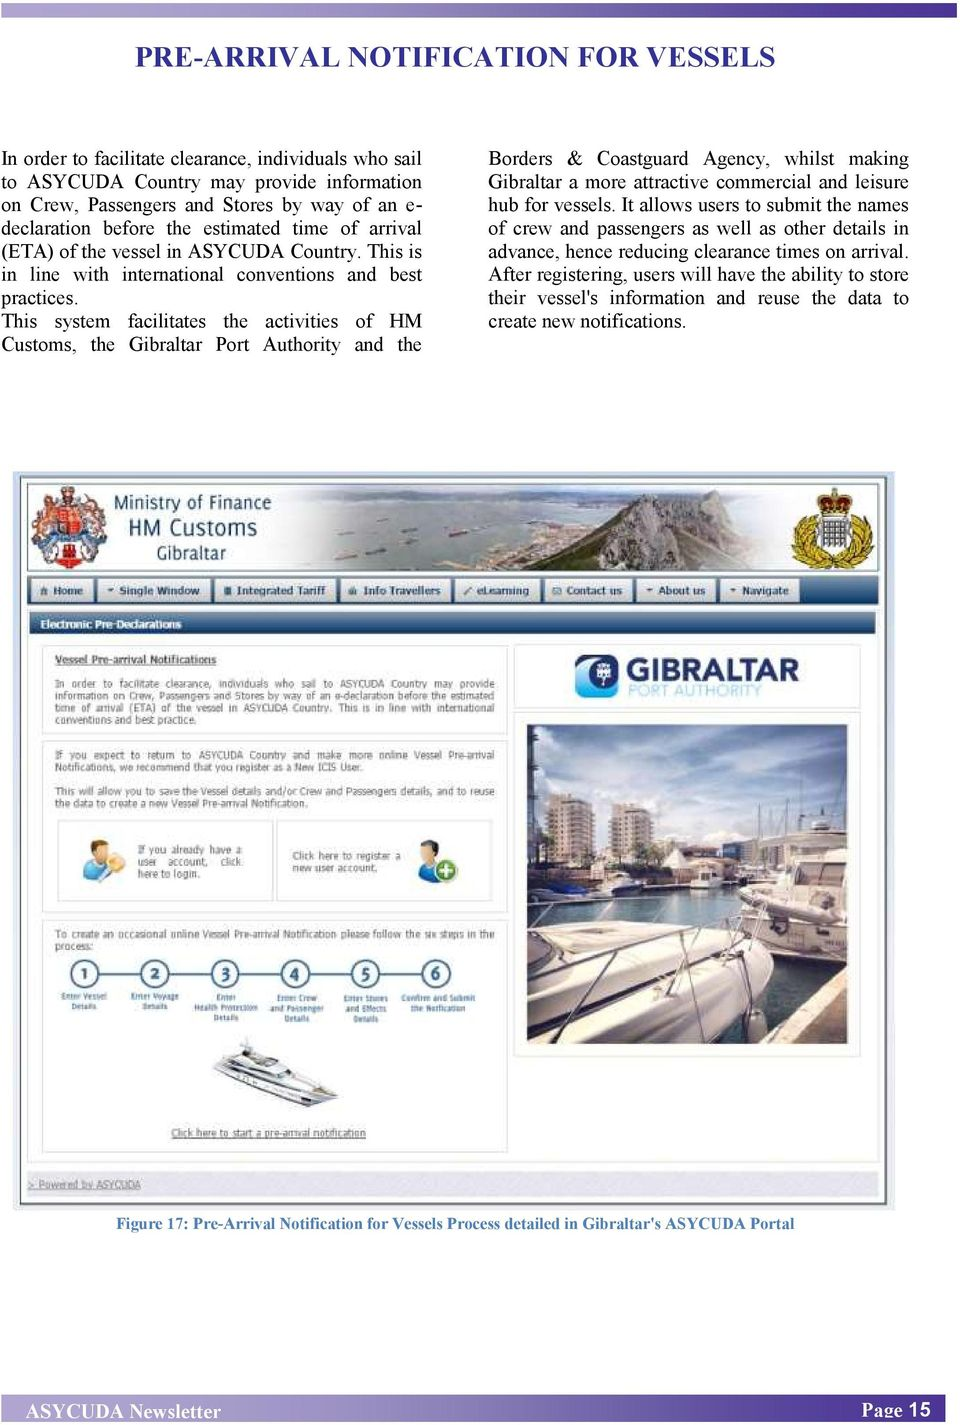 This system facilitates the activities of HM Customs, the Gibraltar Port Authority and the Borders & Coastguard Agency, whilst making Gibraltar a more attractive commercial and leisure hub for